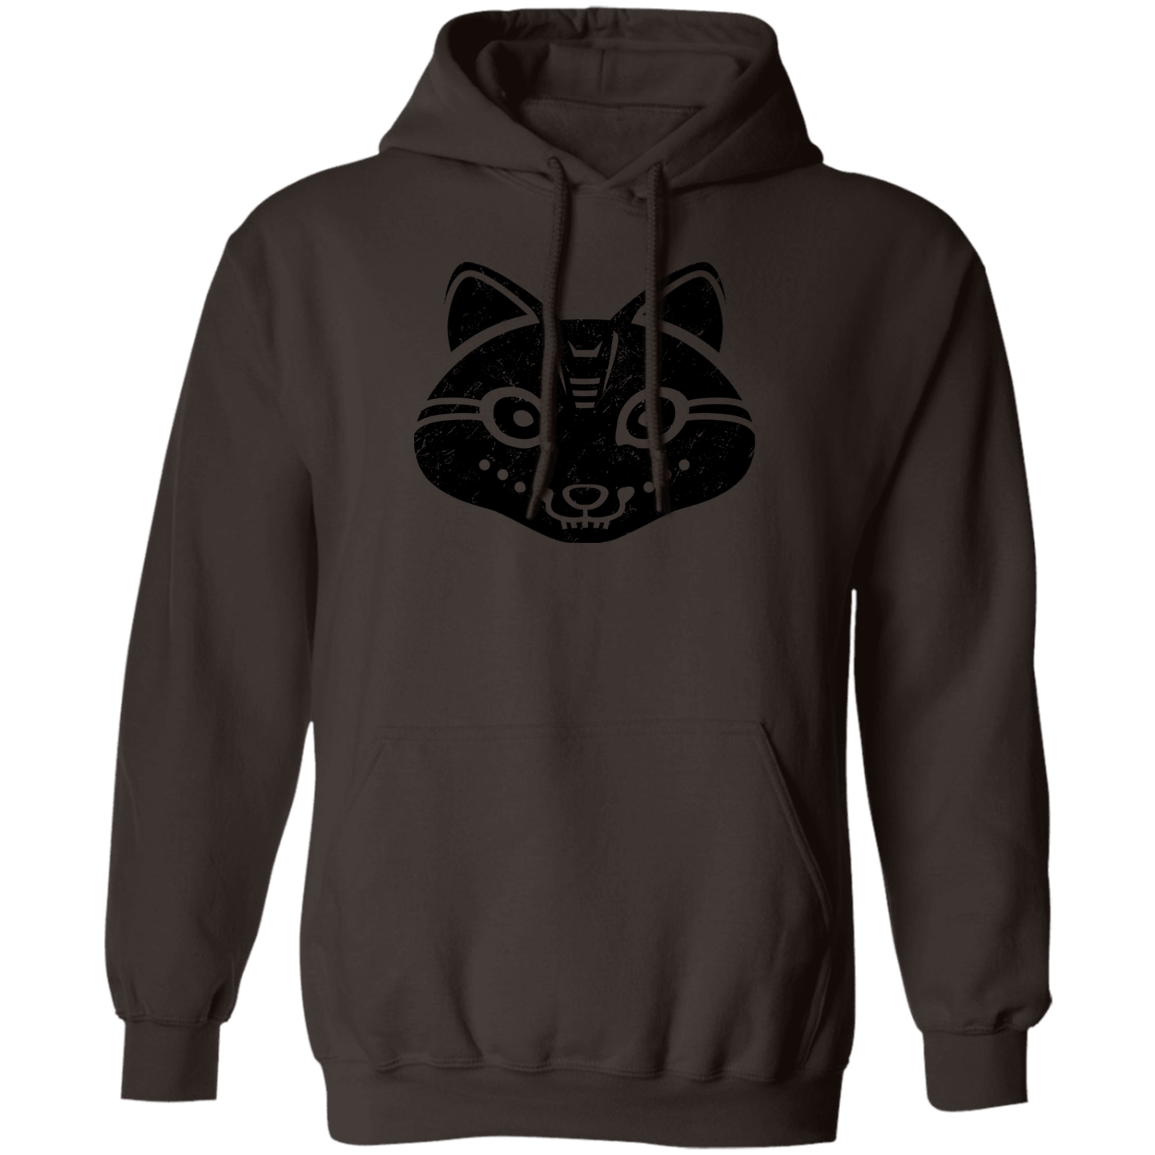 Black Distressed Emblem Hoodies for Adults (Snow Fox/Snowp)